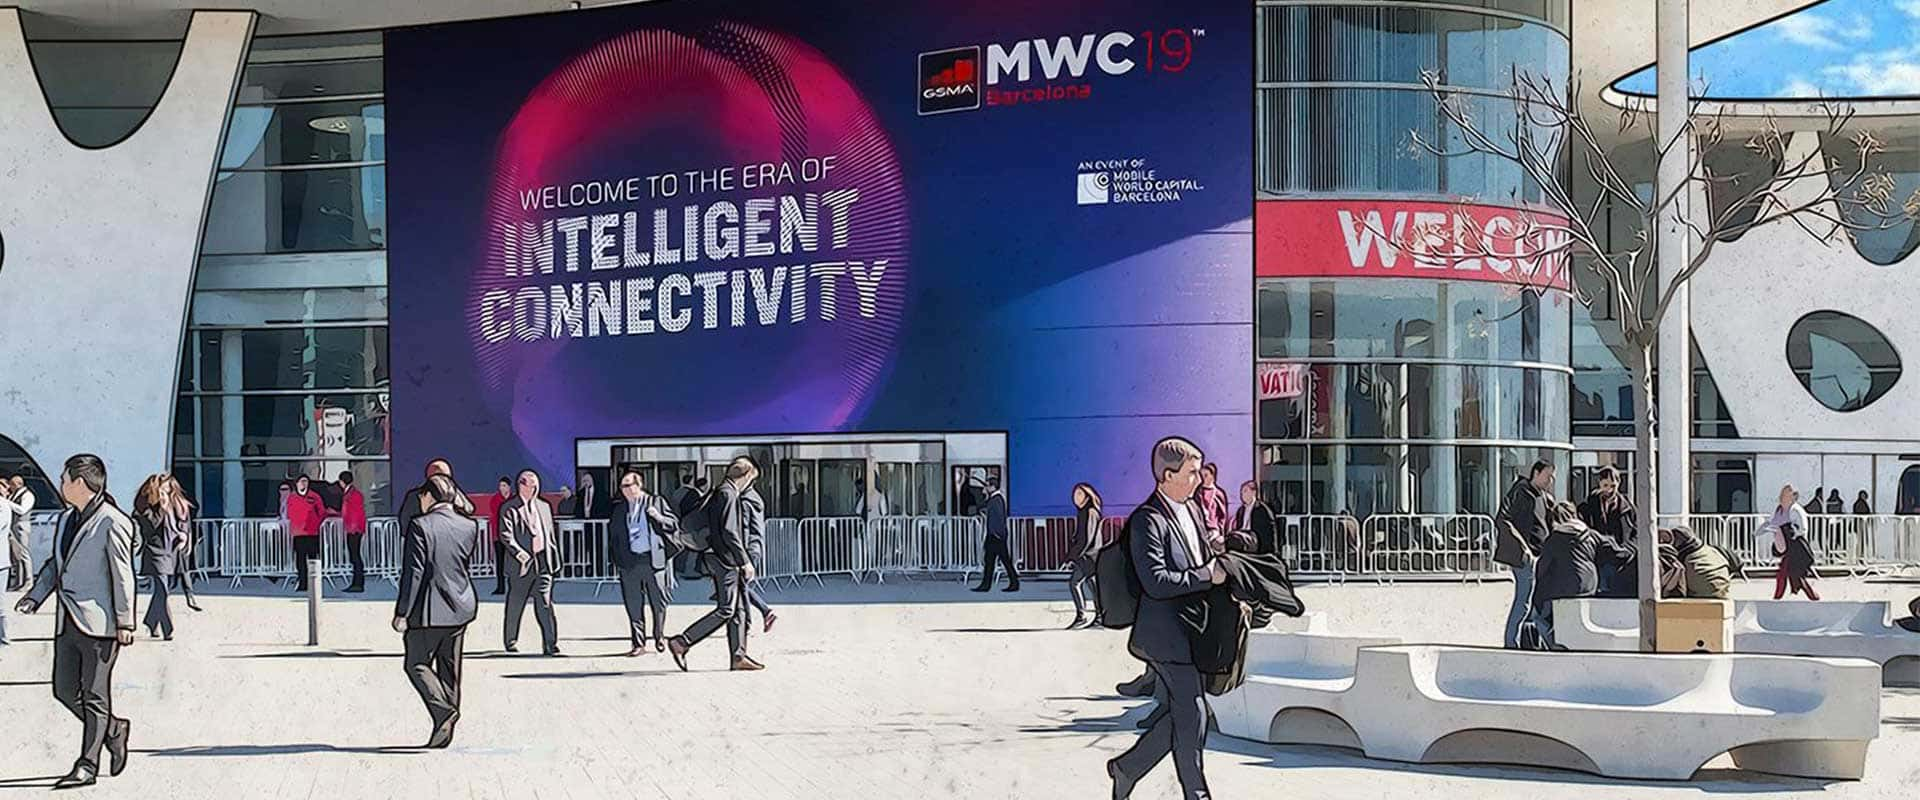 Photo de l'article Observatoire 5G, Partie Mobile World Congress